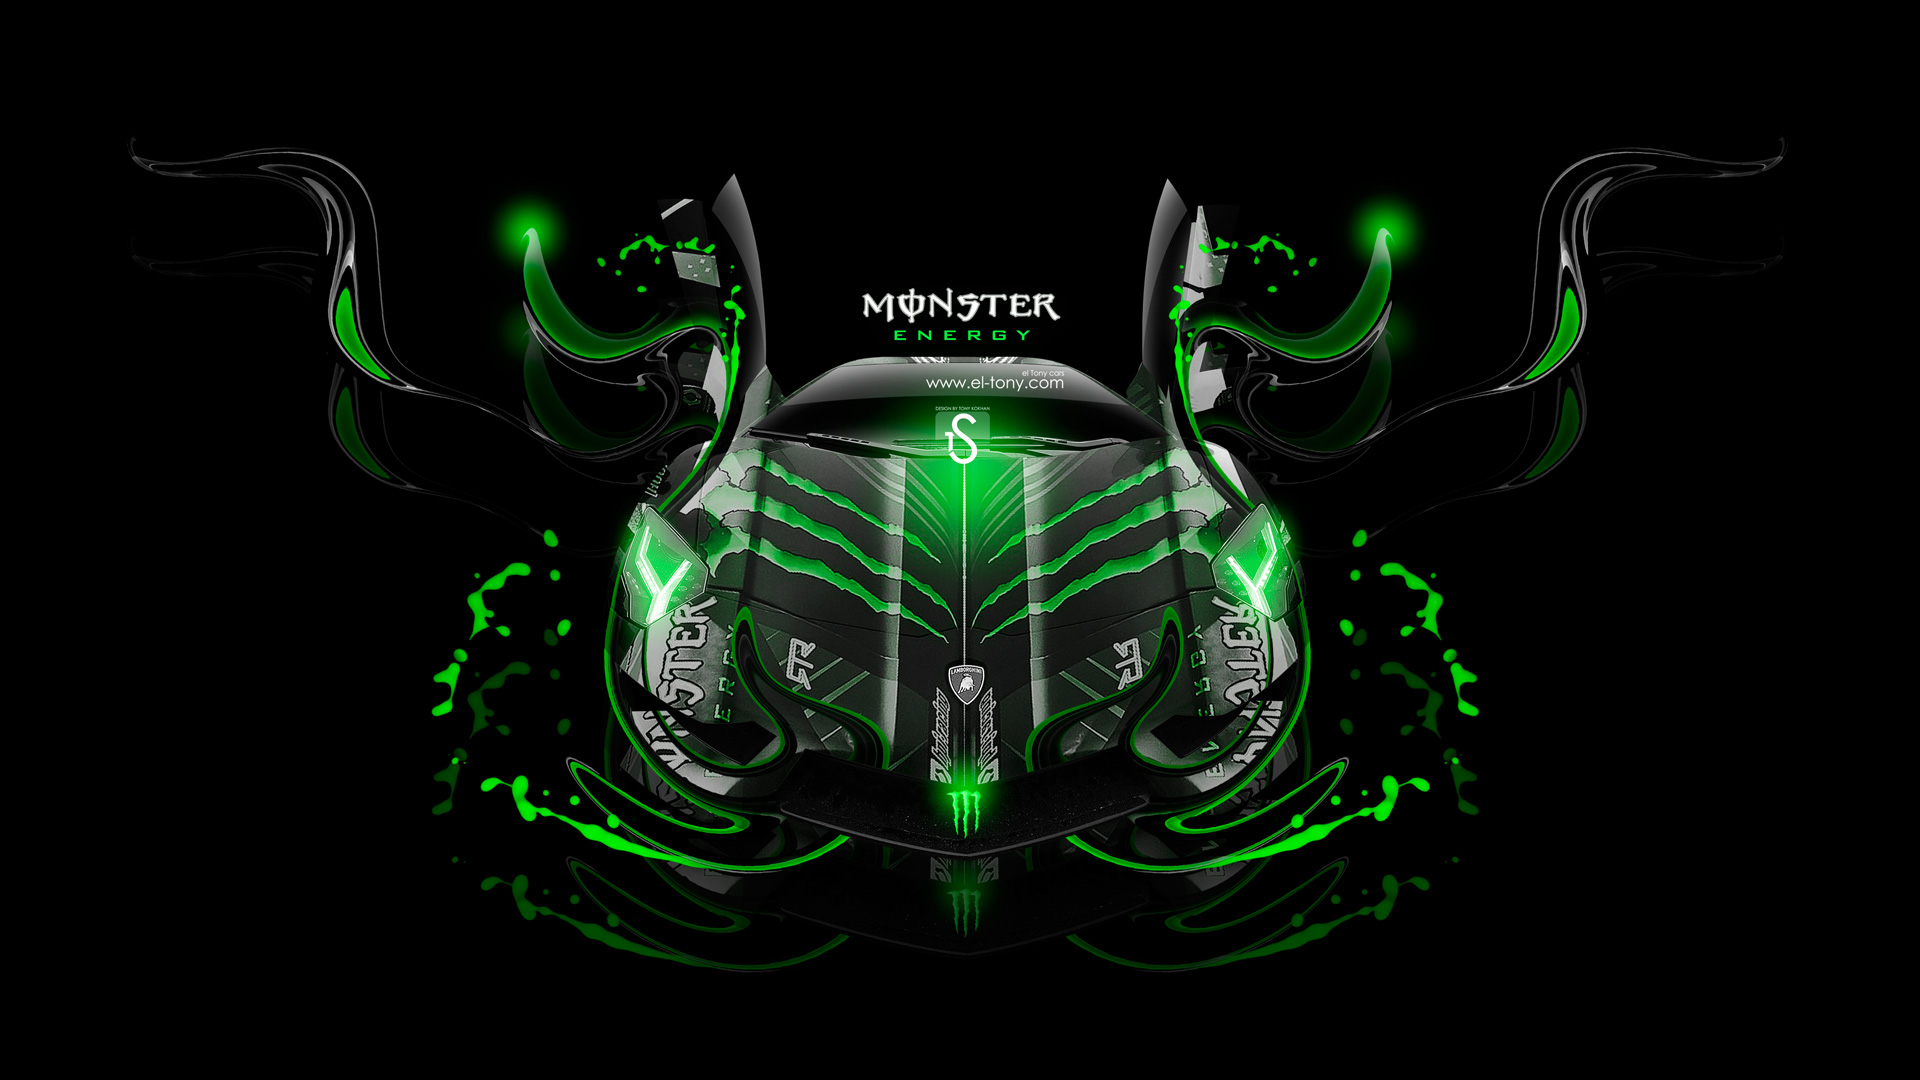 ... Monster Energy Lamborghini Aventador Front Fantasy Plastic Car 2013